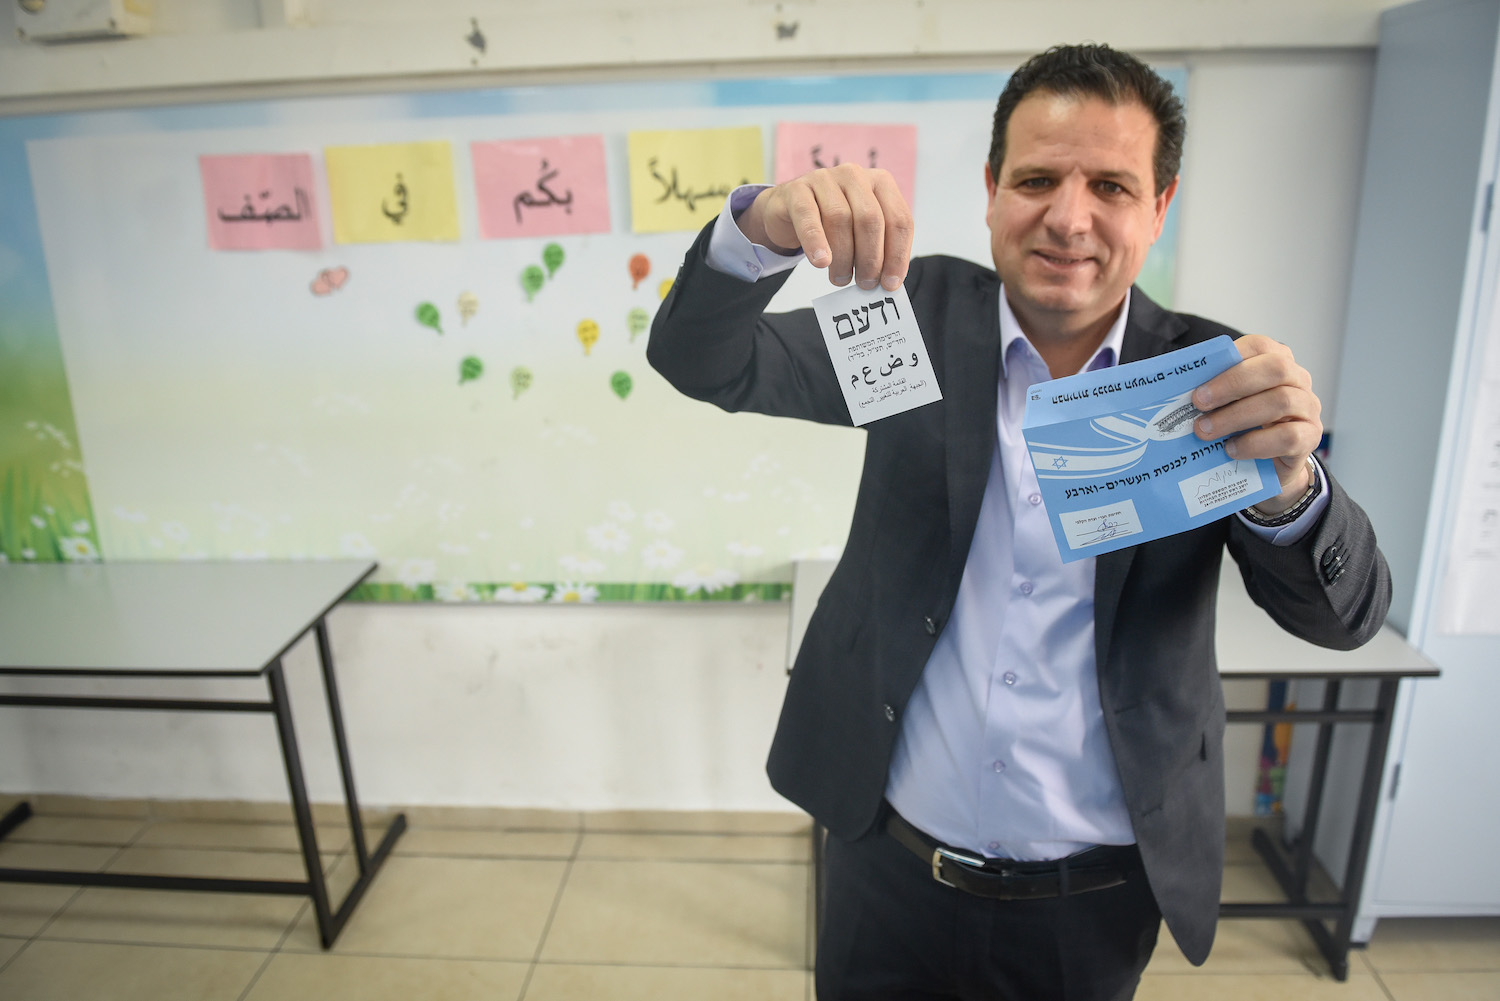 Joint List party leader Ayman Odeh casts his ballot at a voting station in Haifa, March 23, 2021. (Roni Ofer/Flash90)